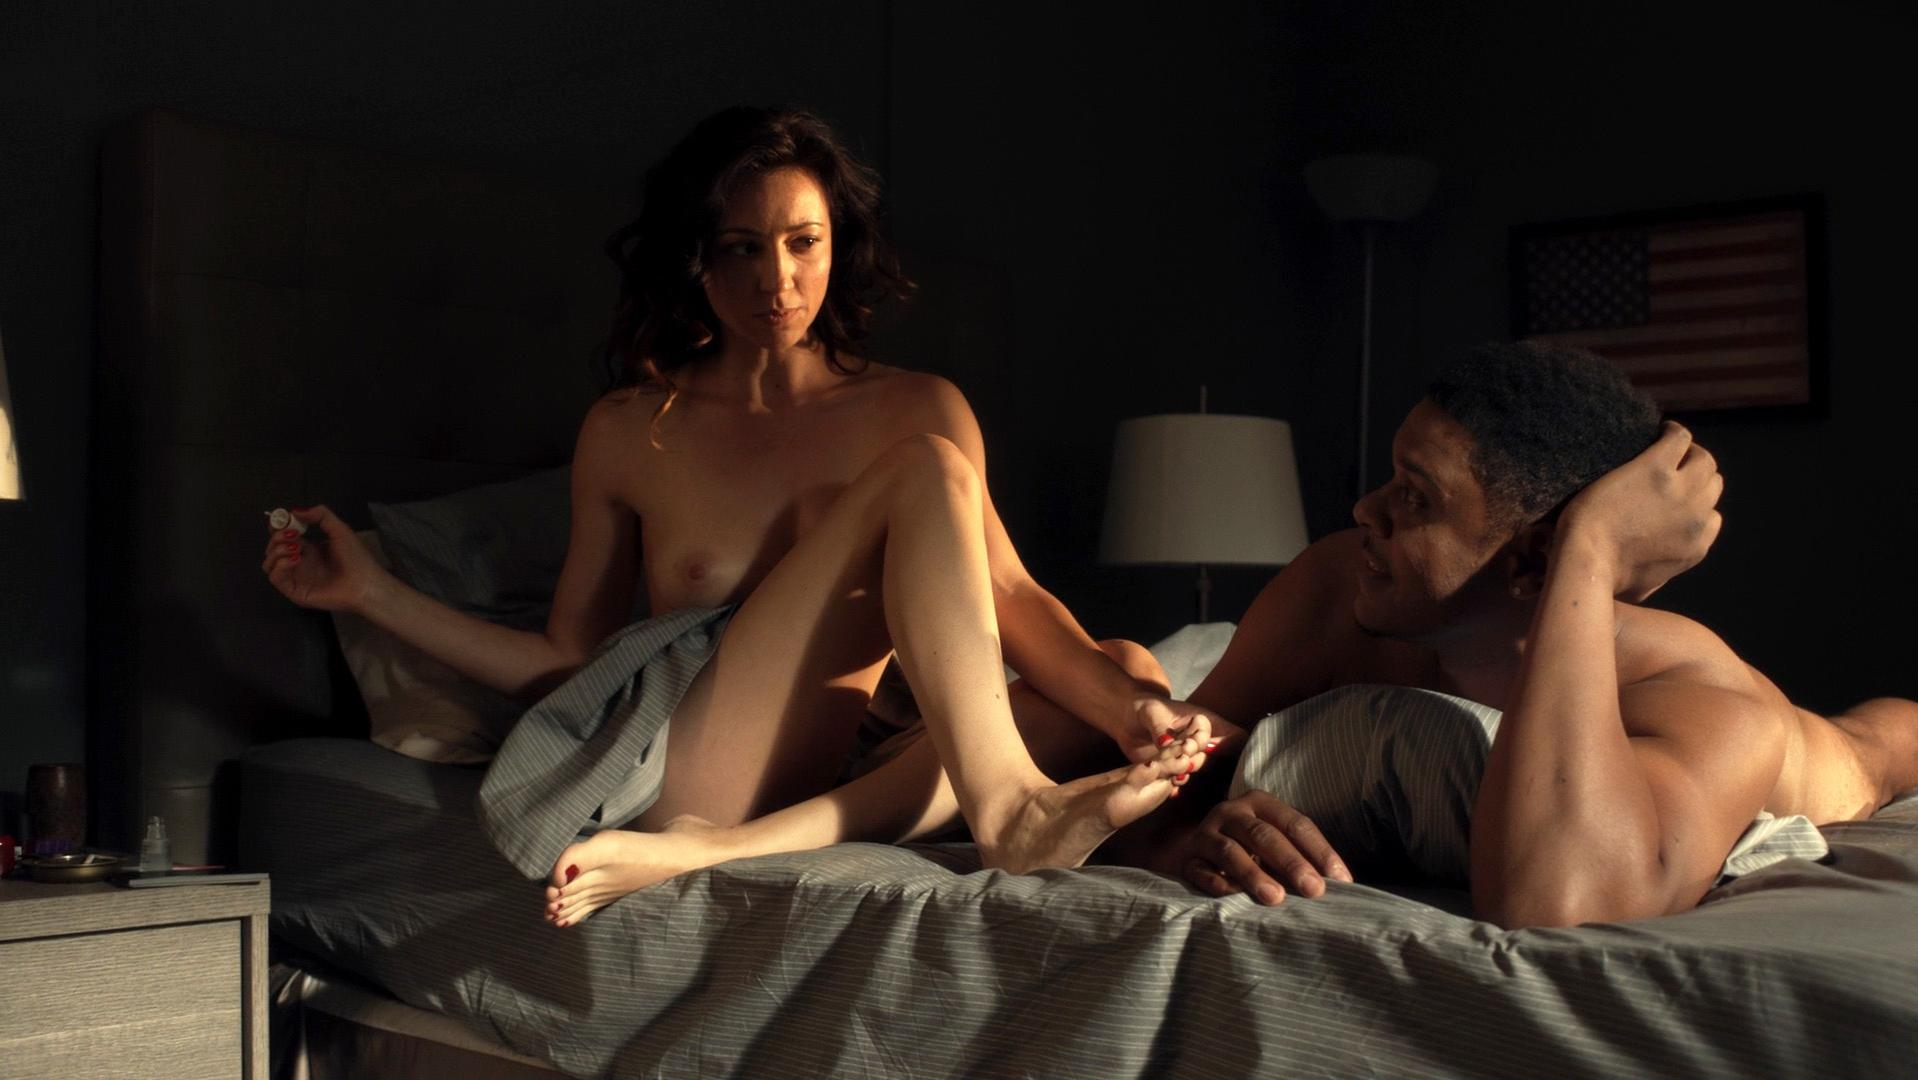 Christy Williams nude - Ray Donovan s03e09 (2015)